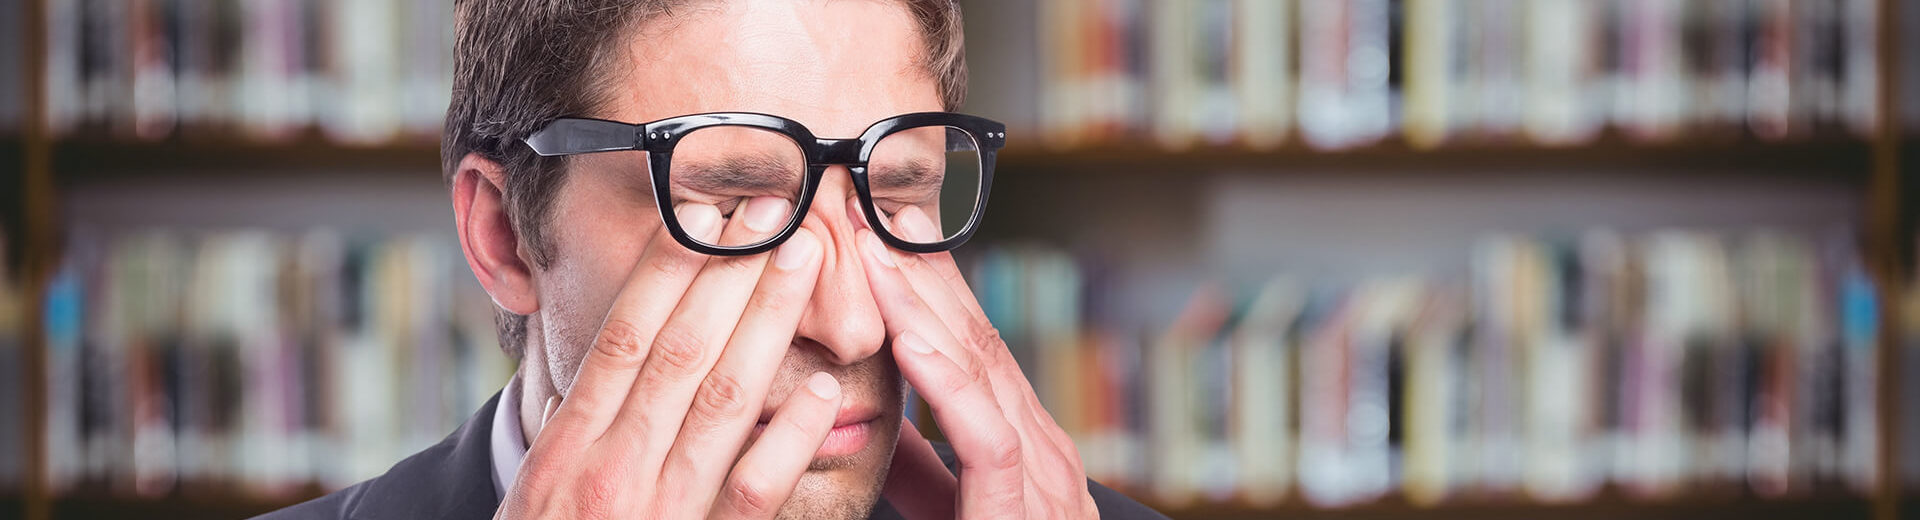 rubbing your eyes can harm your vision